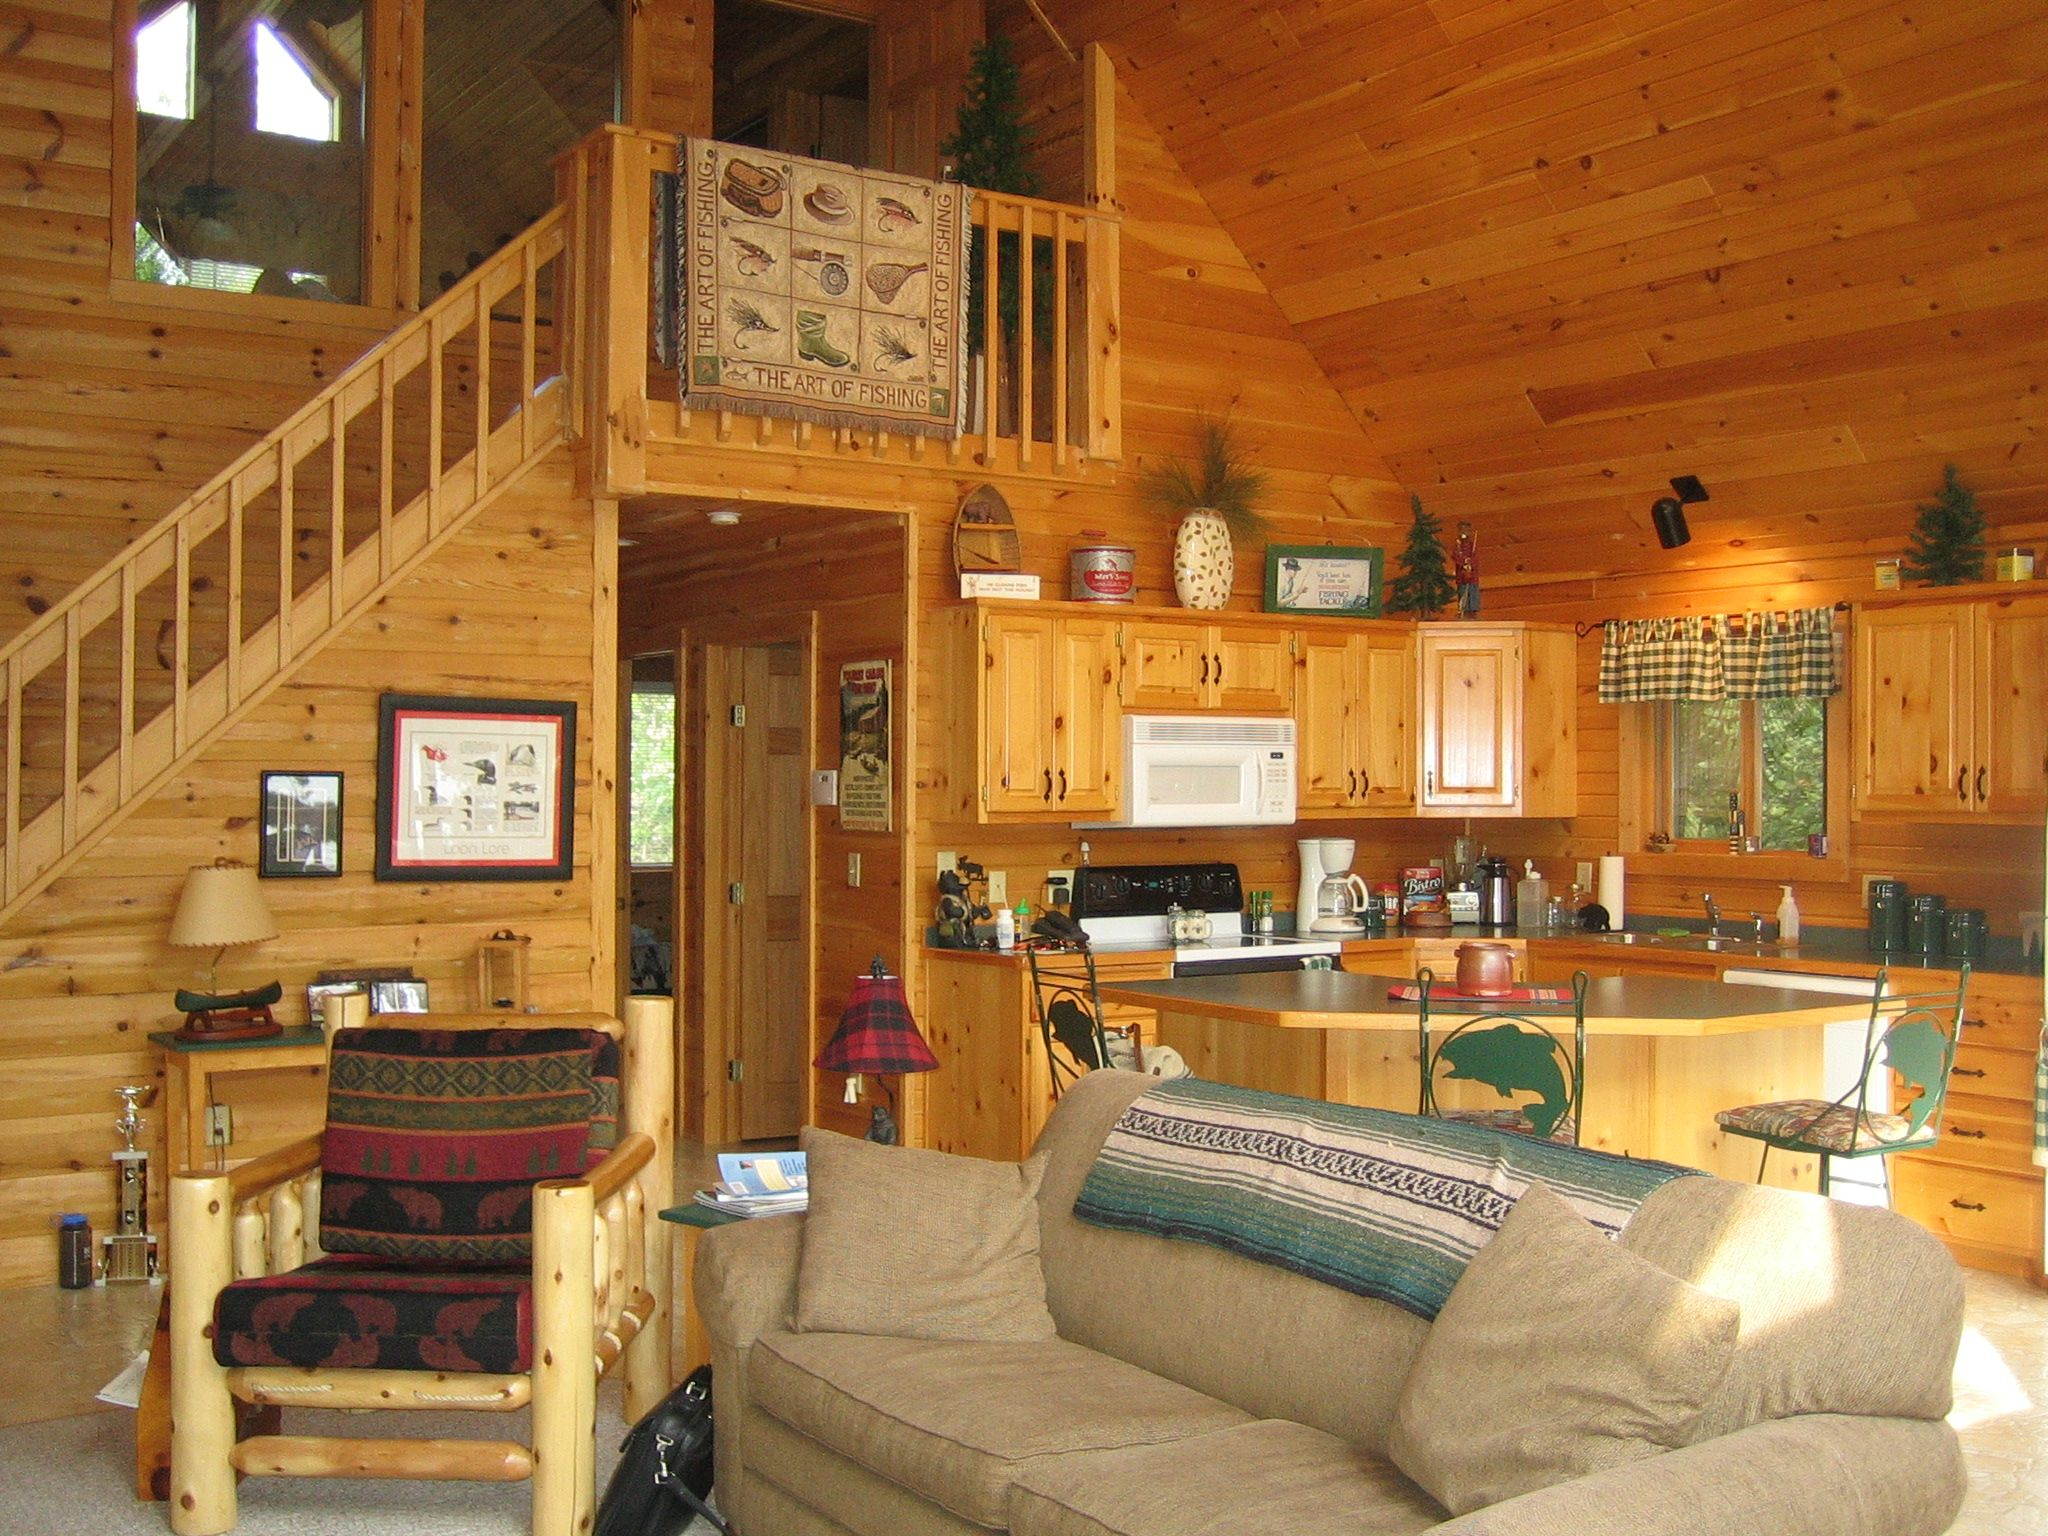 Cabin Design Ideas Interior Cabins Home Decor Cabin Loft Loft Interior